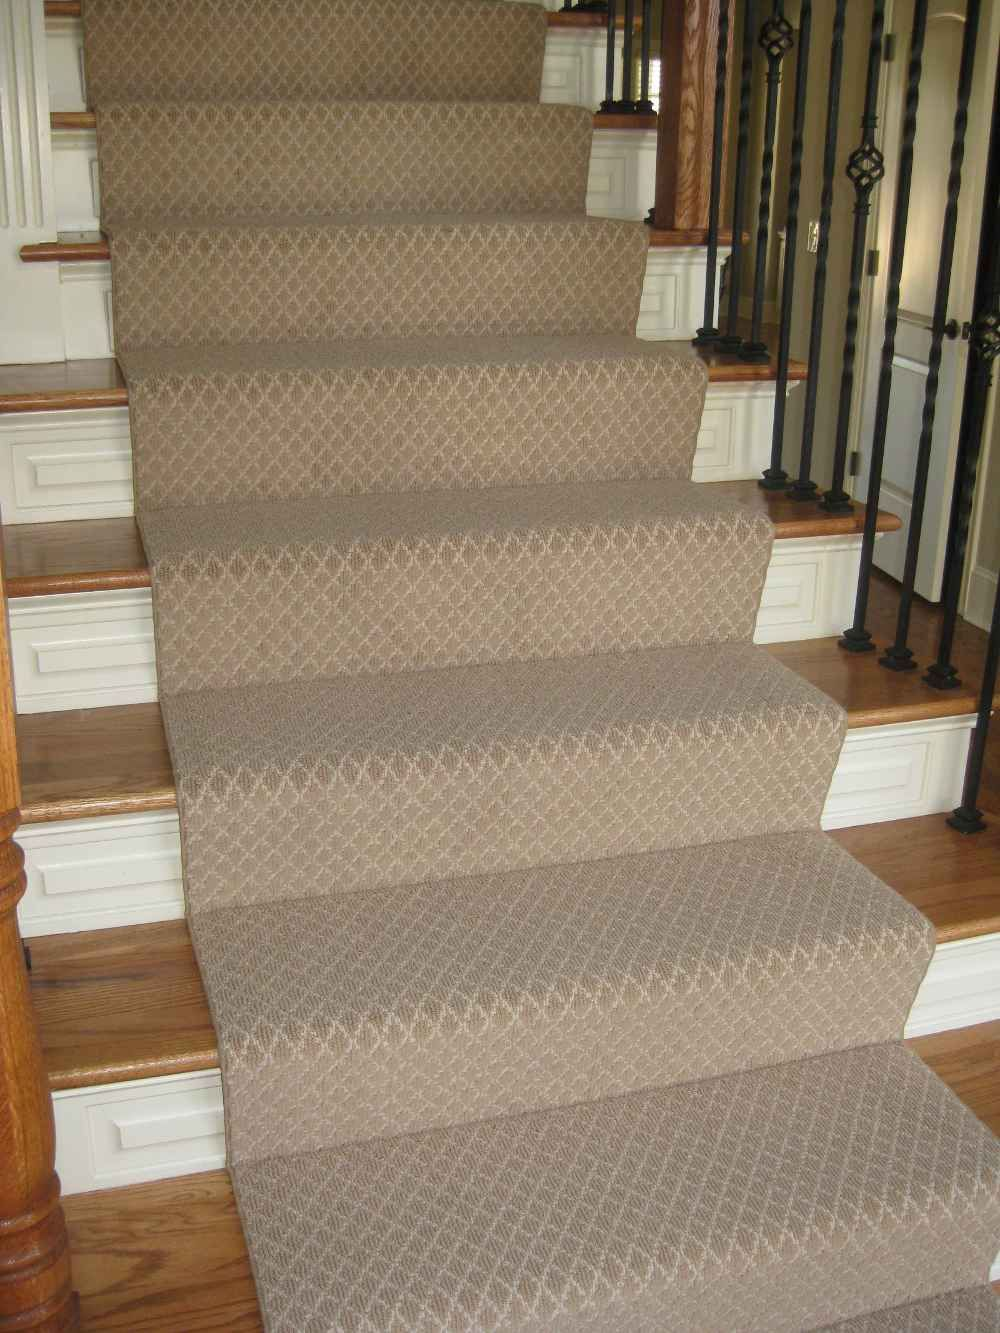 Custom Couristan Carpet Home Stair Runner Peerless Rug Carpet Runner    Carpet Runners For Stairs